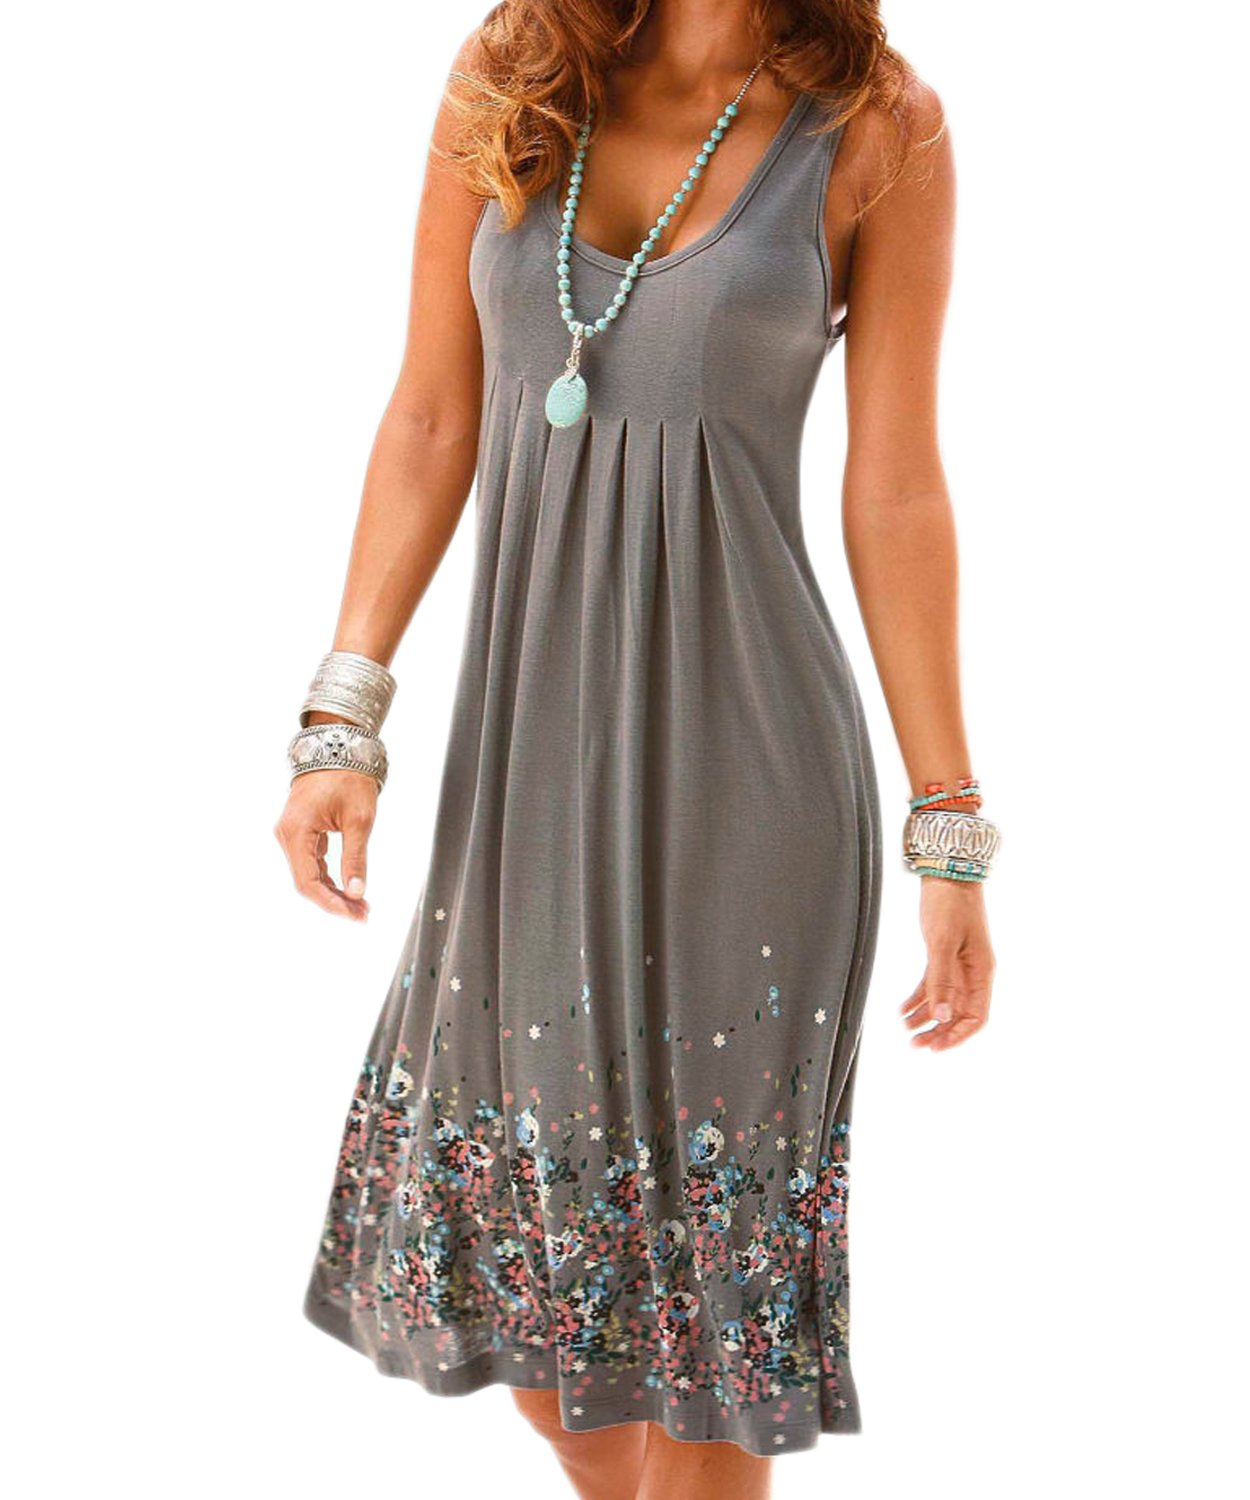 AELSON Womens Summer Casual Sleeveless Mini Printed Vest Dresses ,Grey,Large